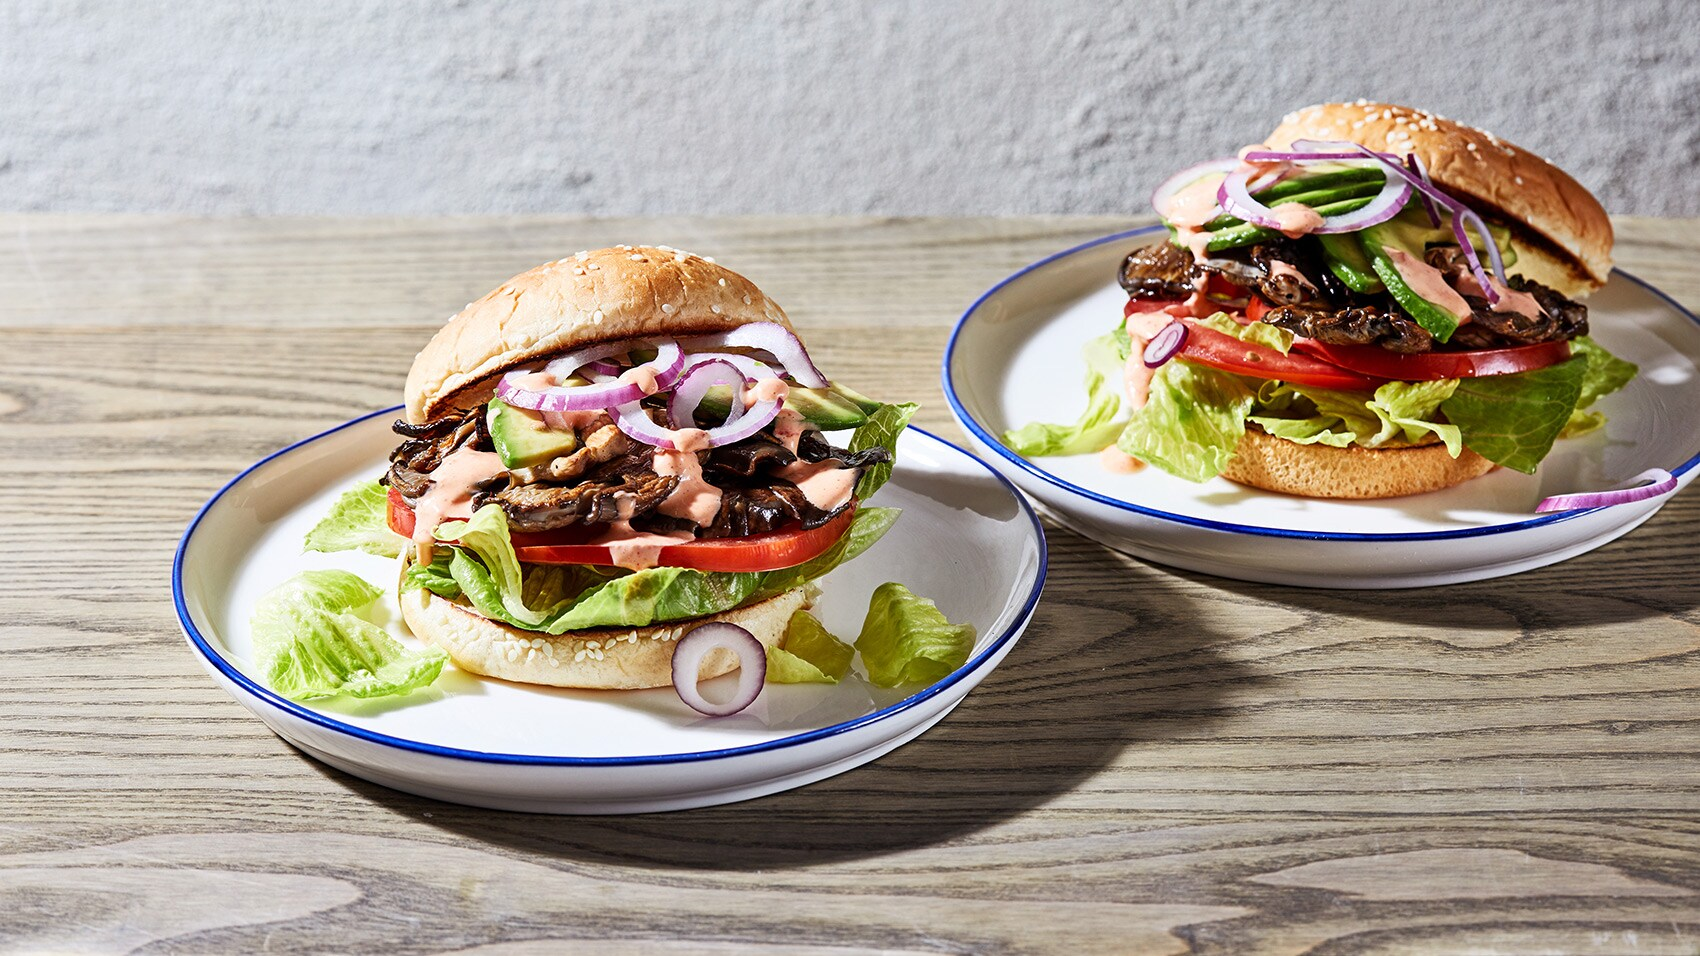 Cook these meaty oyster mushrooms right, and they make for a satisfying sandwich